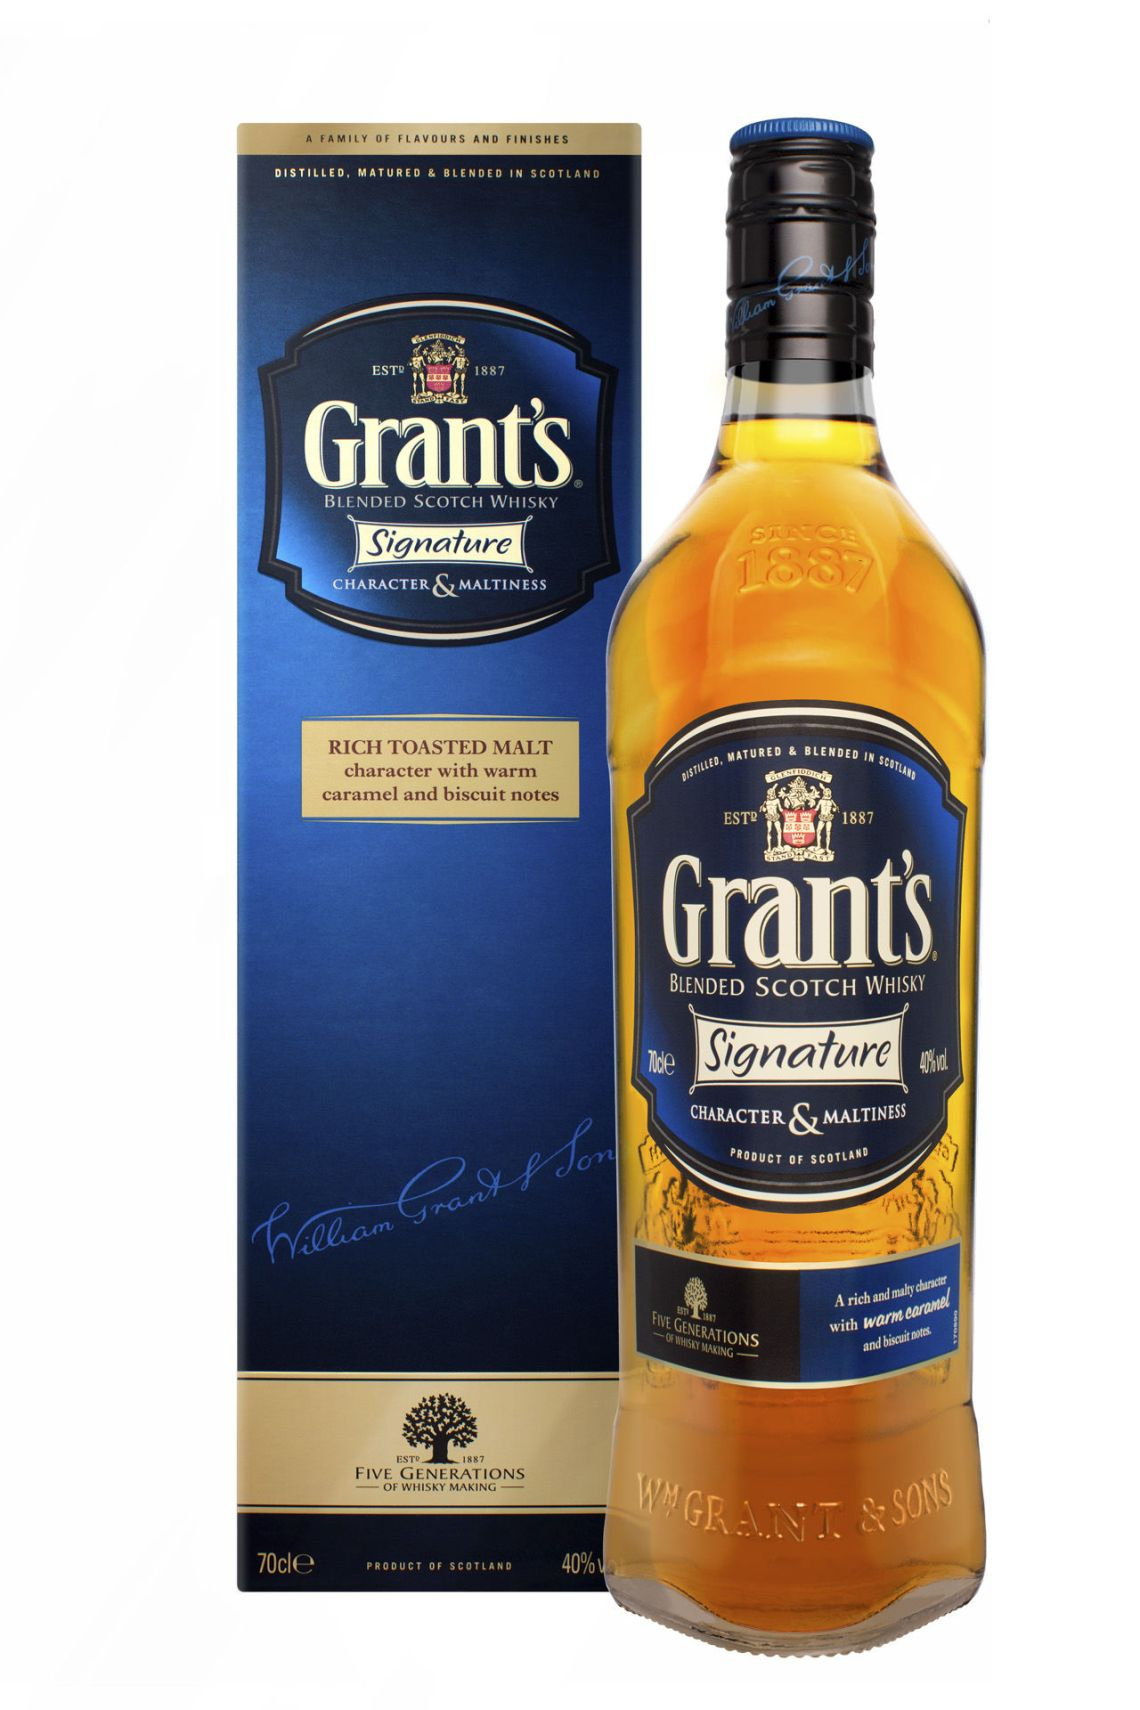 Grants_Signature_Global_(2_labels)_face_on_Bottle_&_Box_Images_large